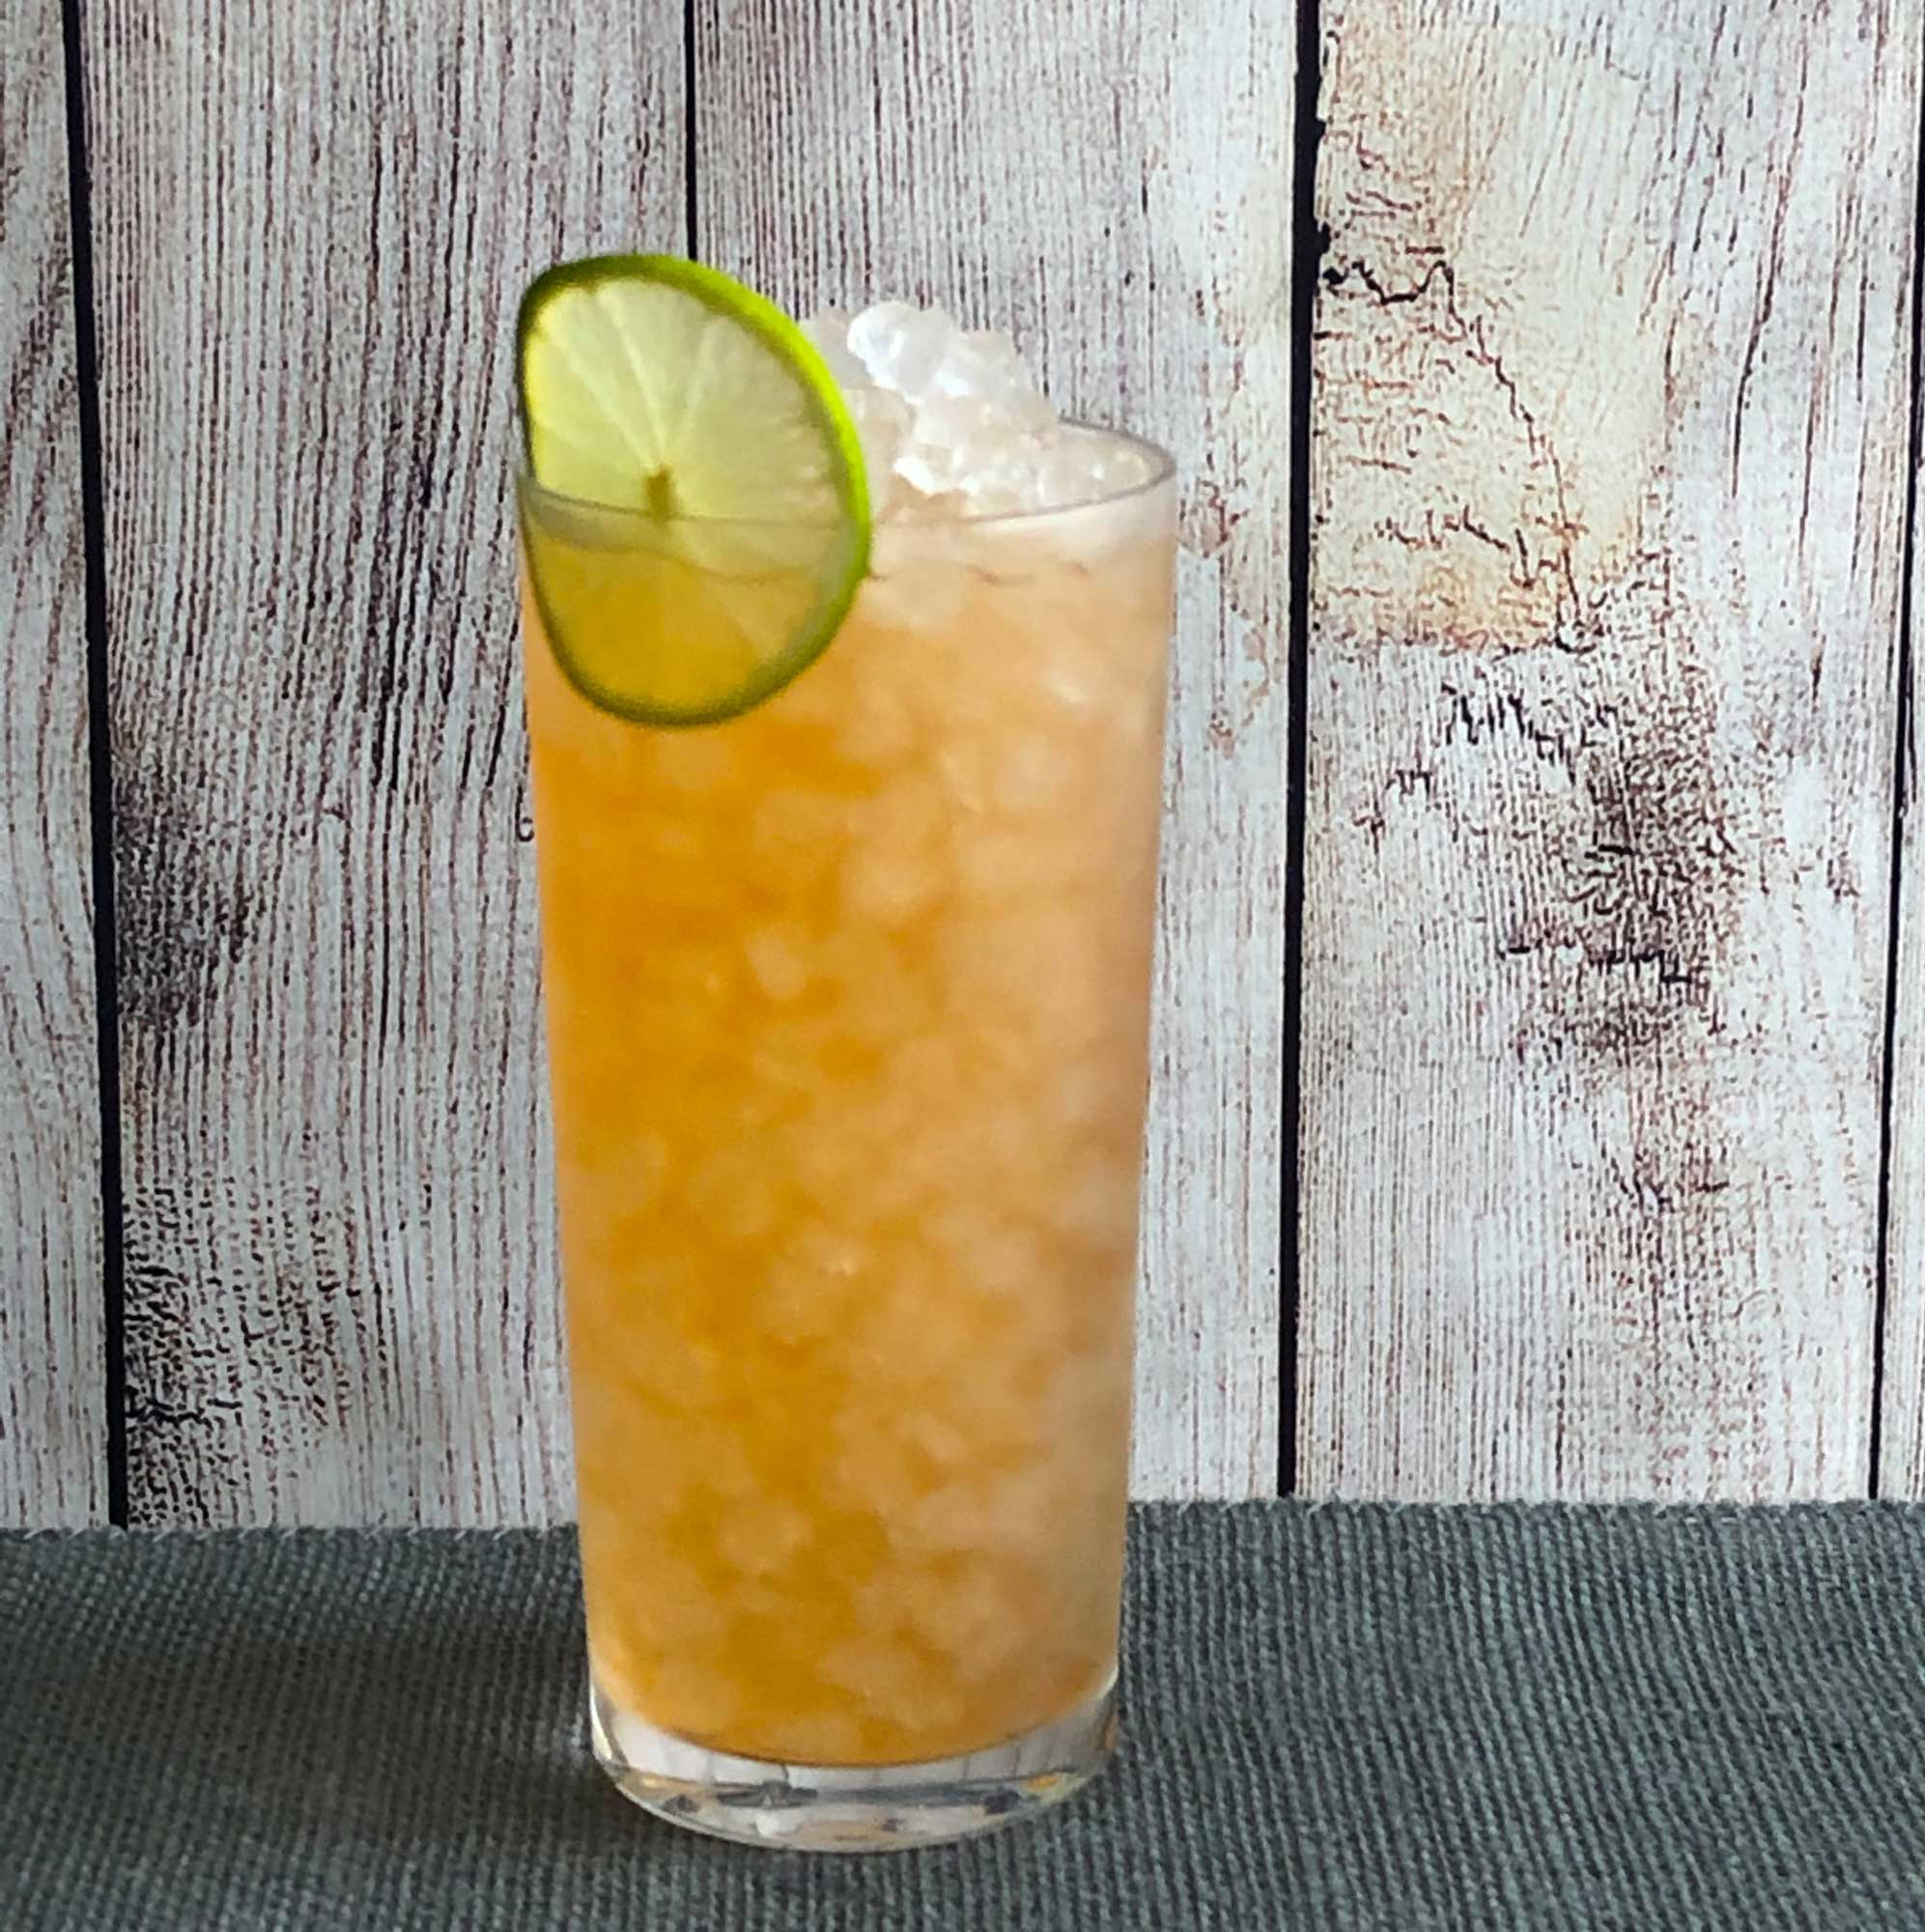 An example of the Barbados Redux, the mixed drink (cocktail) featuring The Scarlet Ibis Trinidad Rum, John D. Taylor's Velvet Falernum, lime juice, and Angostura bitters; photo by Lee Edwards